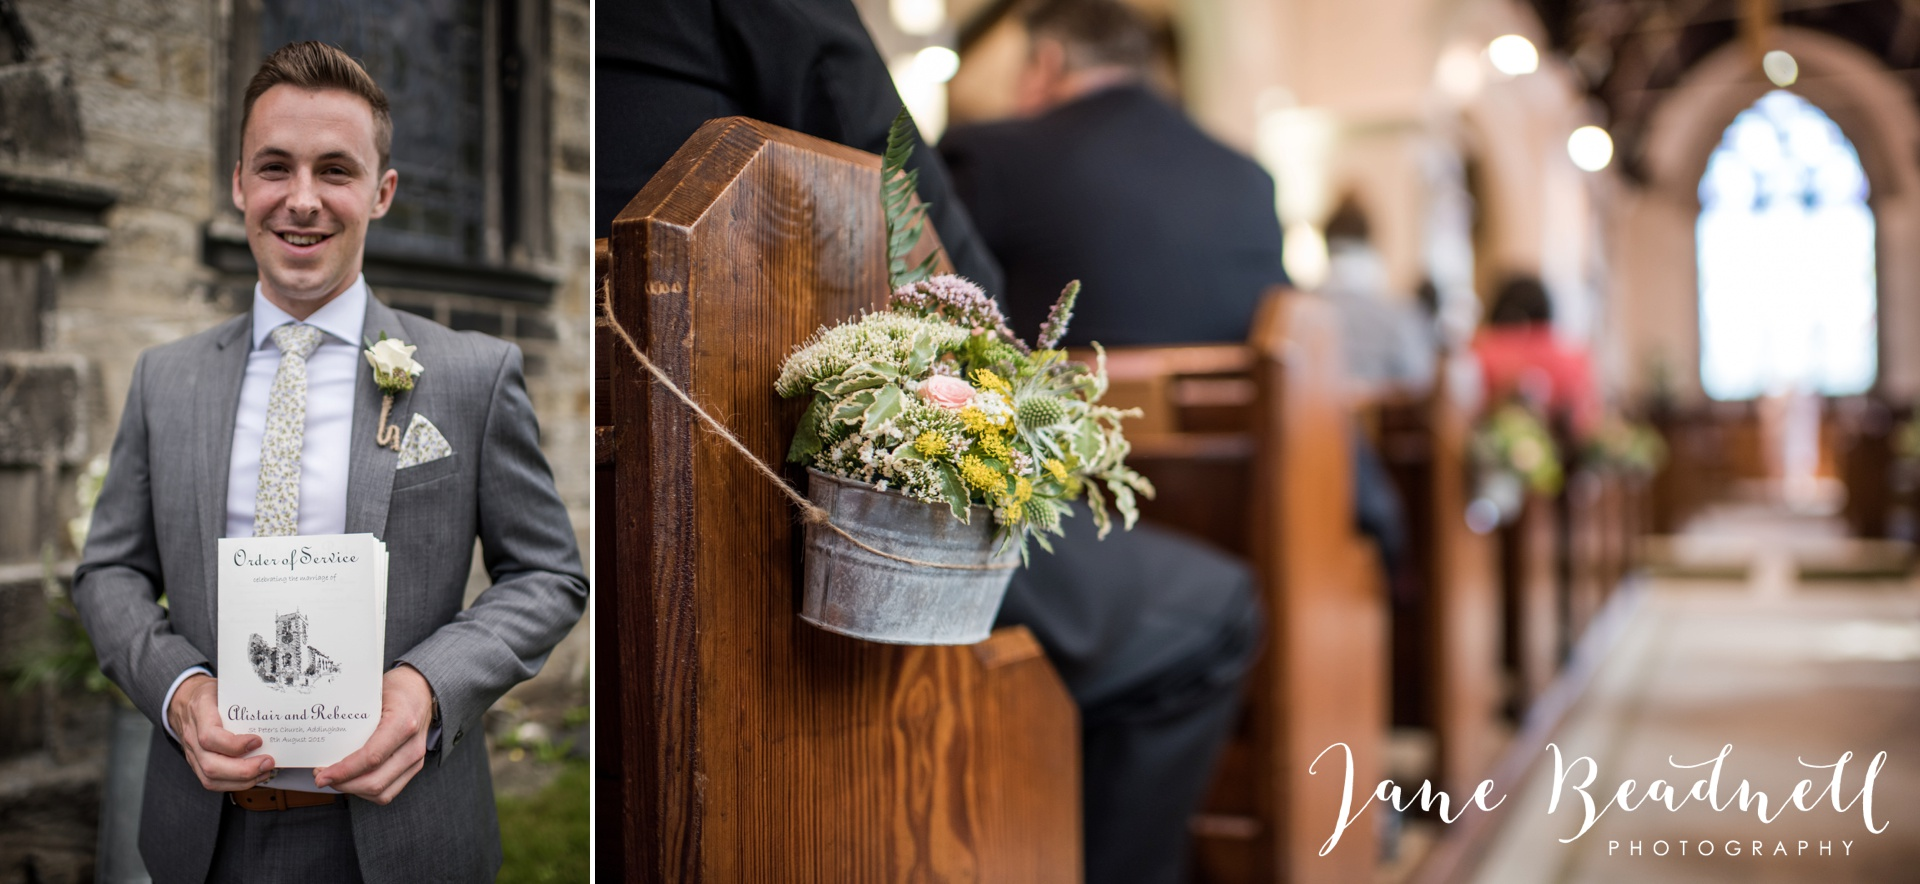 Jane Beadnell fine art wedding photographer Leeds_0023